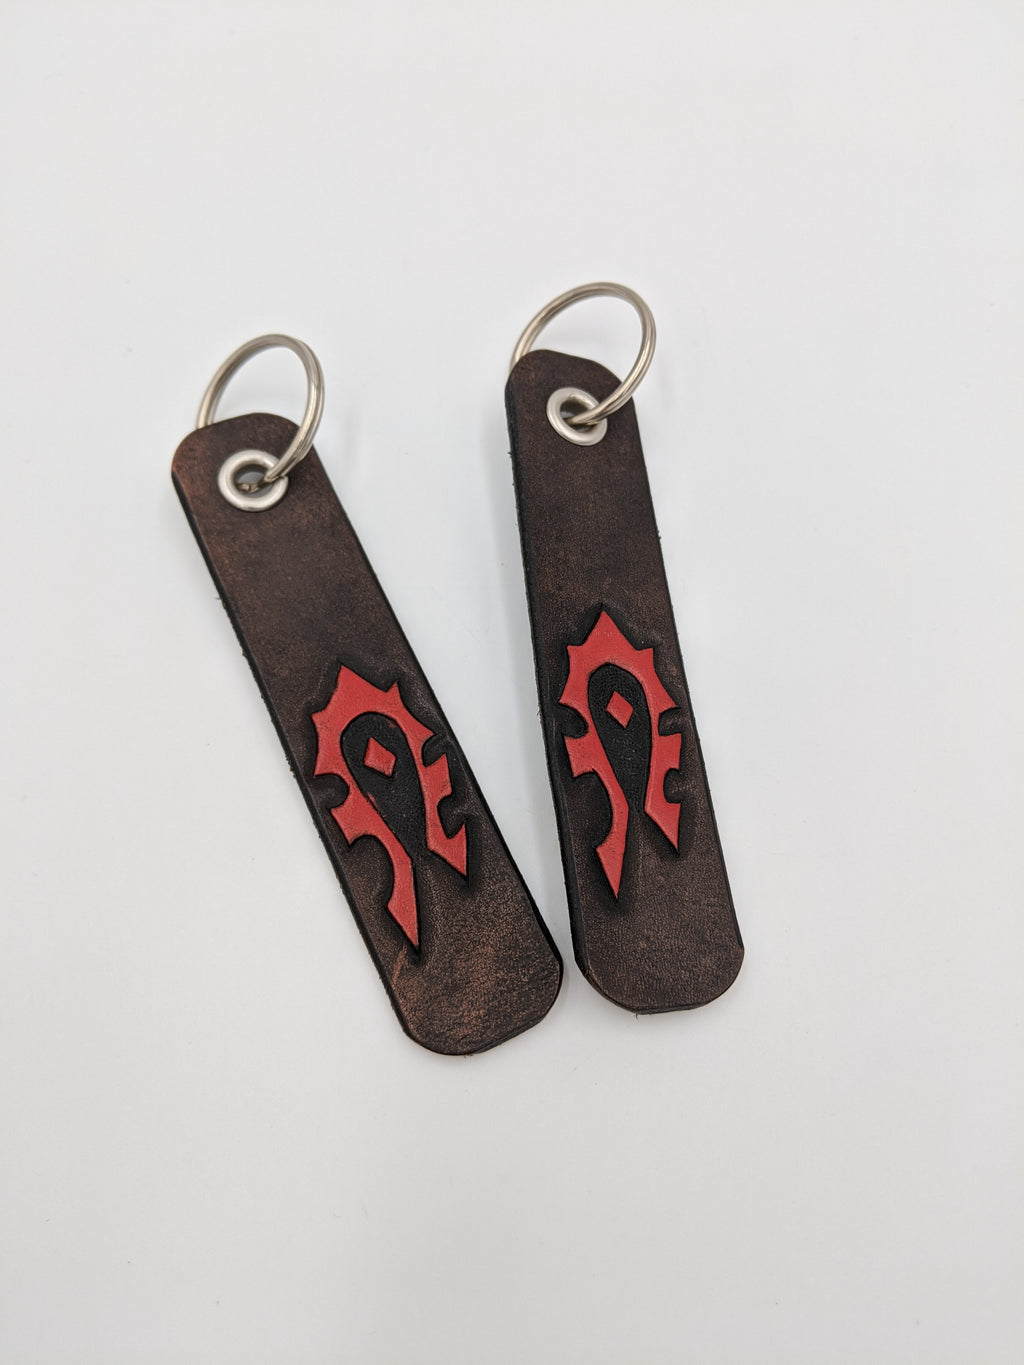 Leather World of Warcraft inspired key fob, Horde